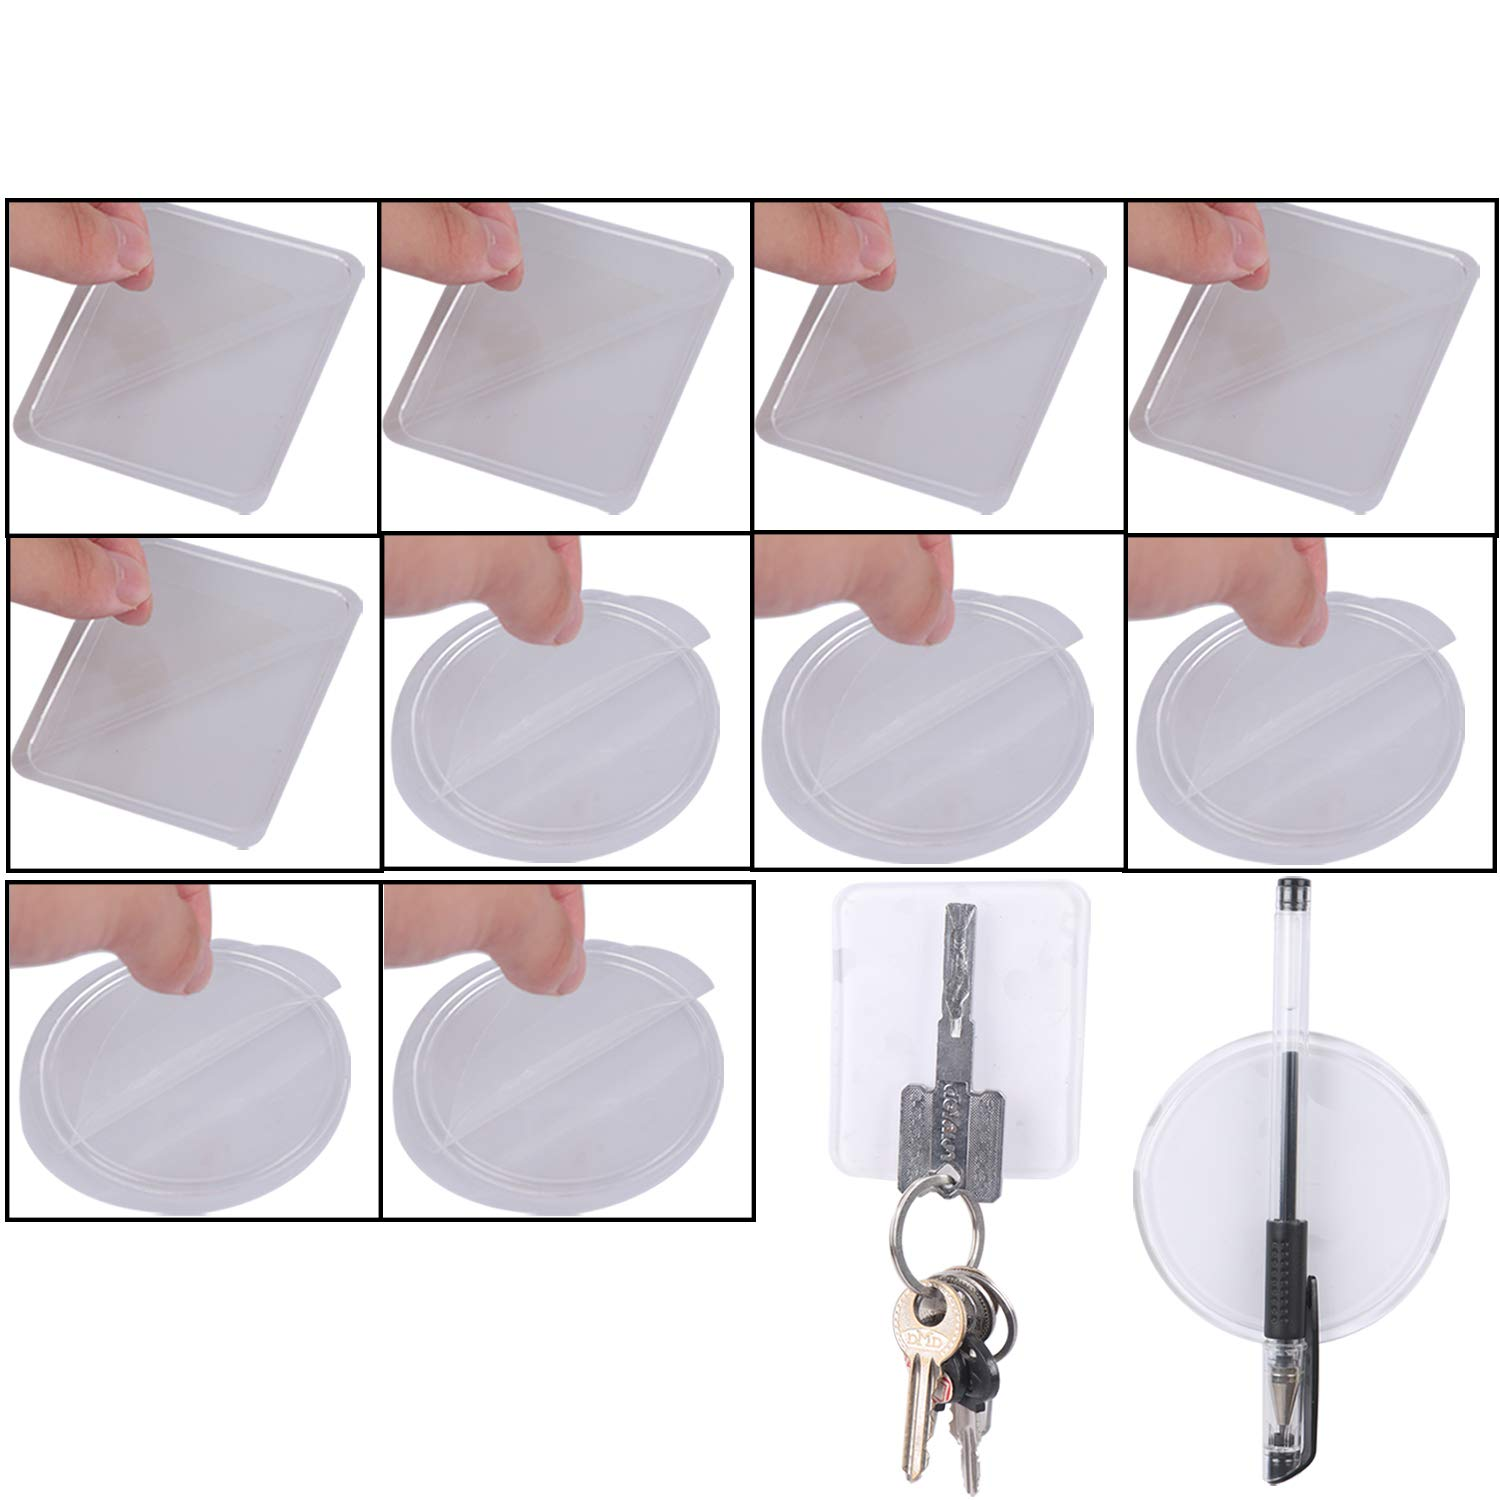 20 Pcs Sticky Gel Pads Double Sided Gel Pad Adhesive Anti Slip Wall Pad Transparent Washable Grip Tape Reusable Traceless Tape, Square and Round by Olgaa